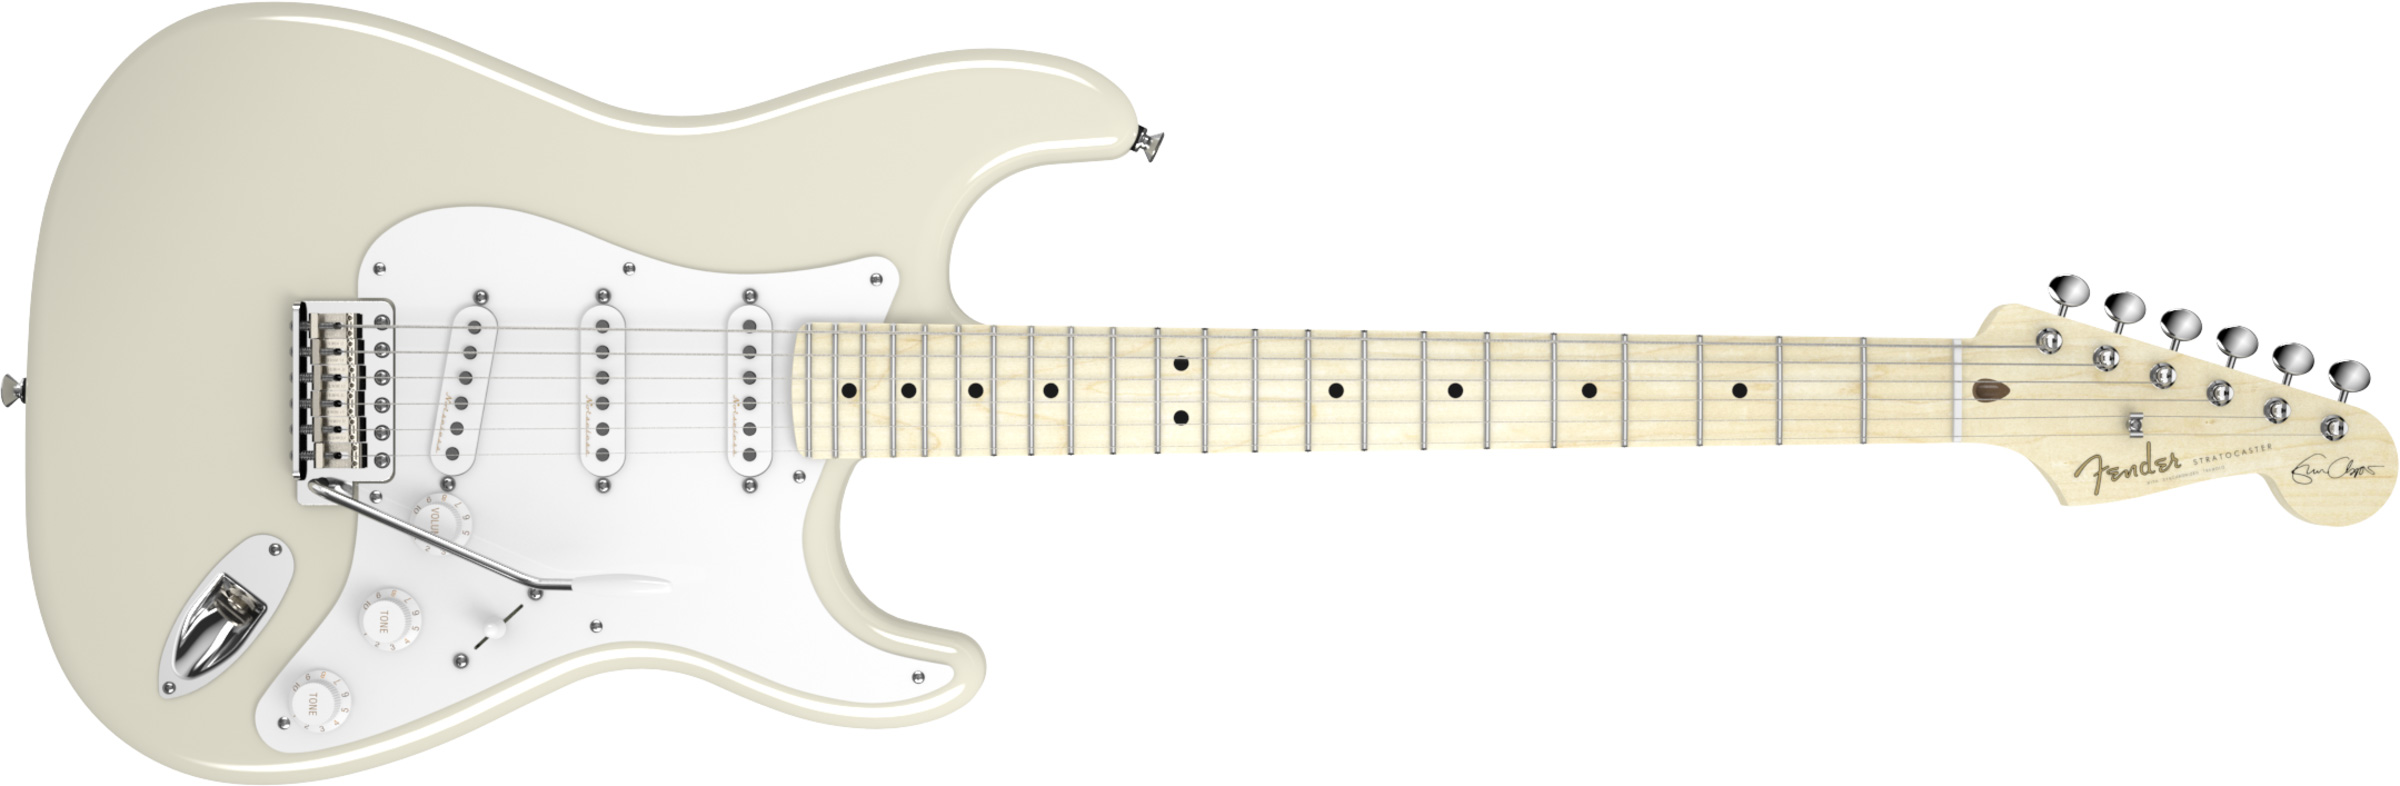 GUITARRA FENDER SIG SERIES ERIC CLAPTON 011-7602-805 OLYMPIC WHITE